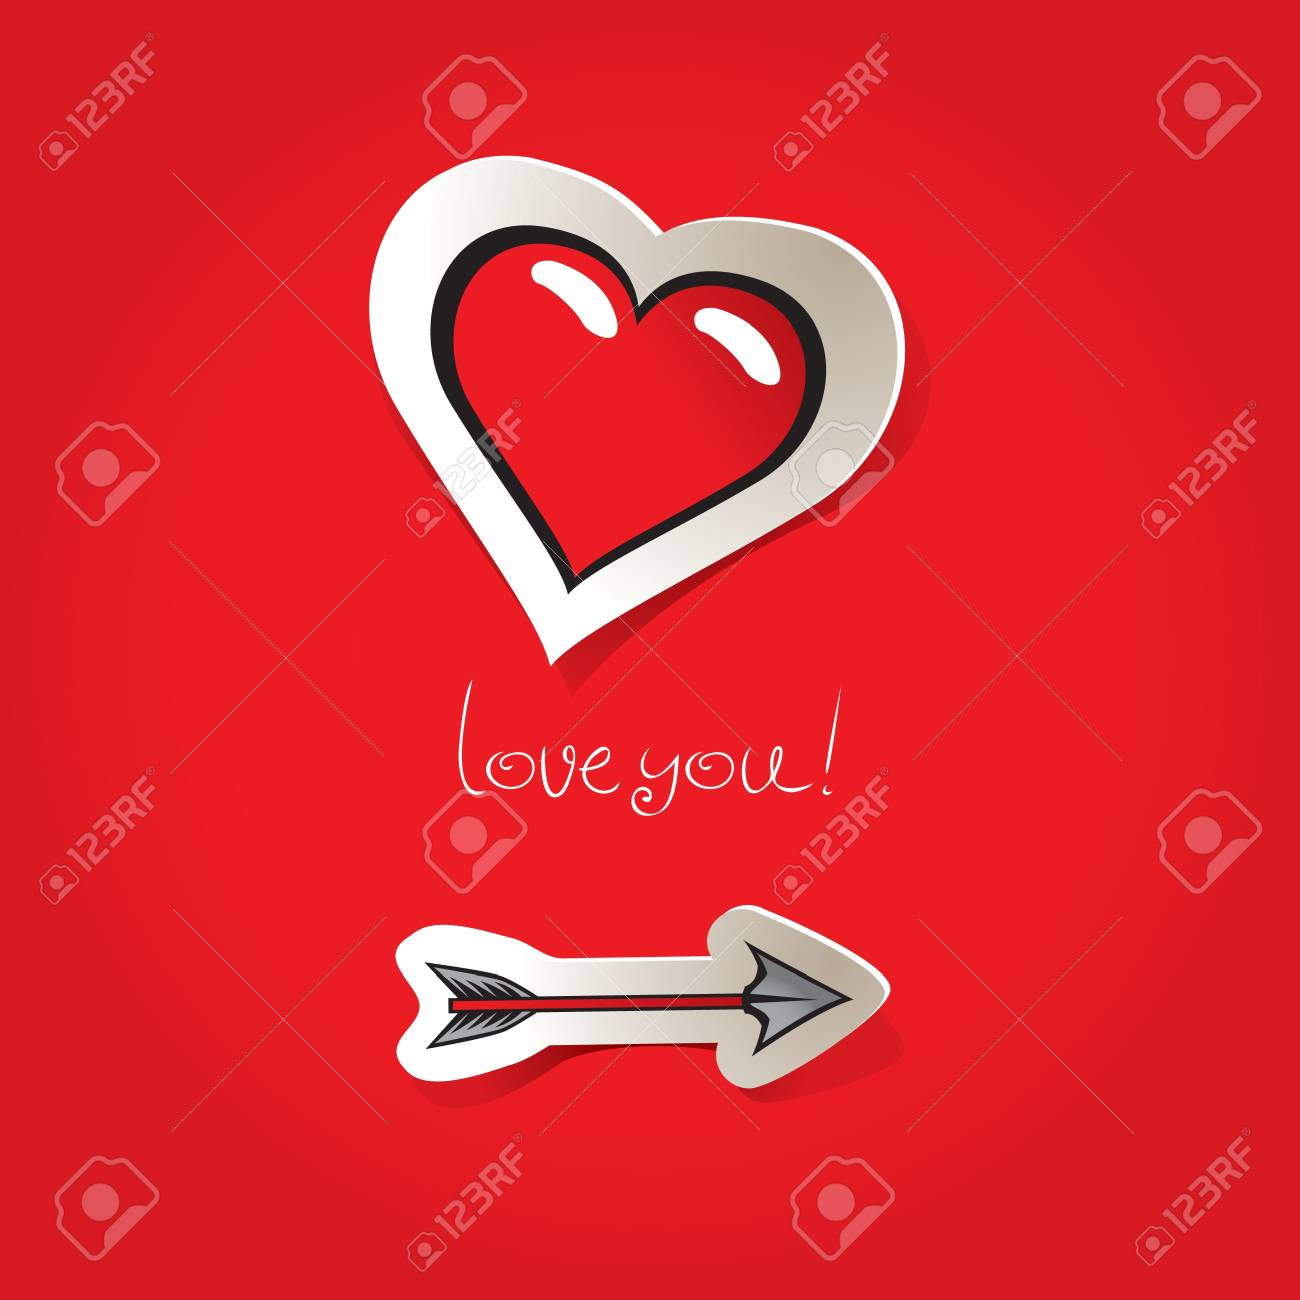 Valentine's Day card to an arrow and a heart Stock Vector - 11769172